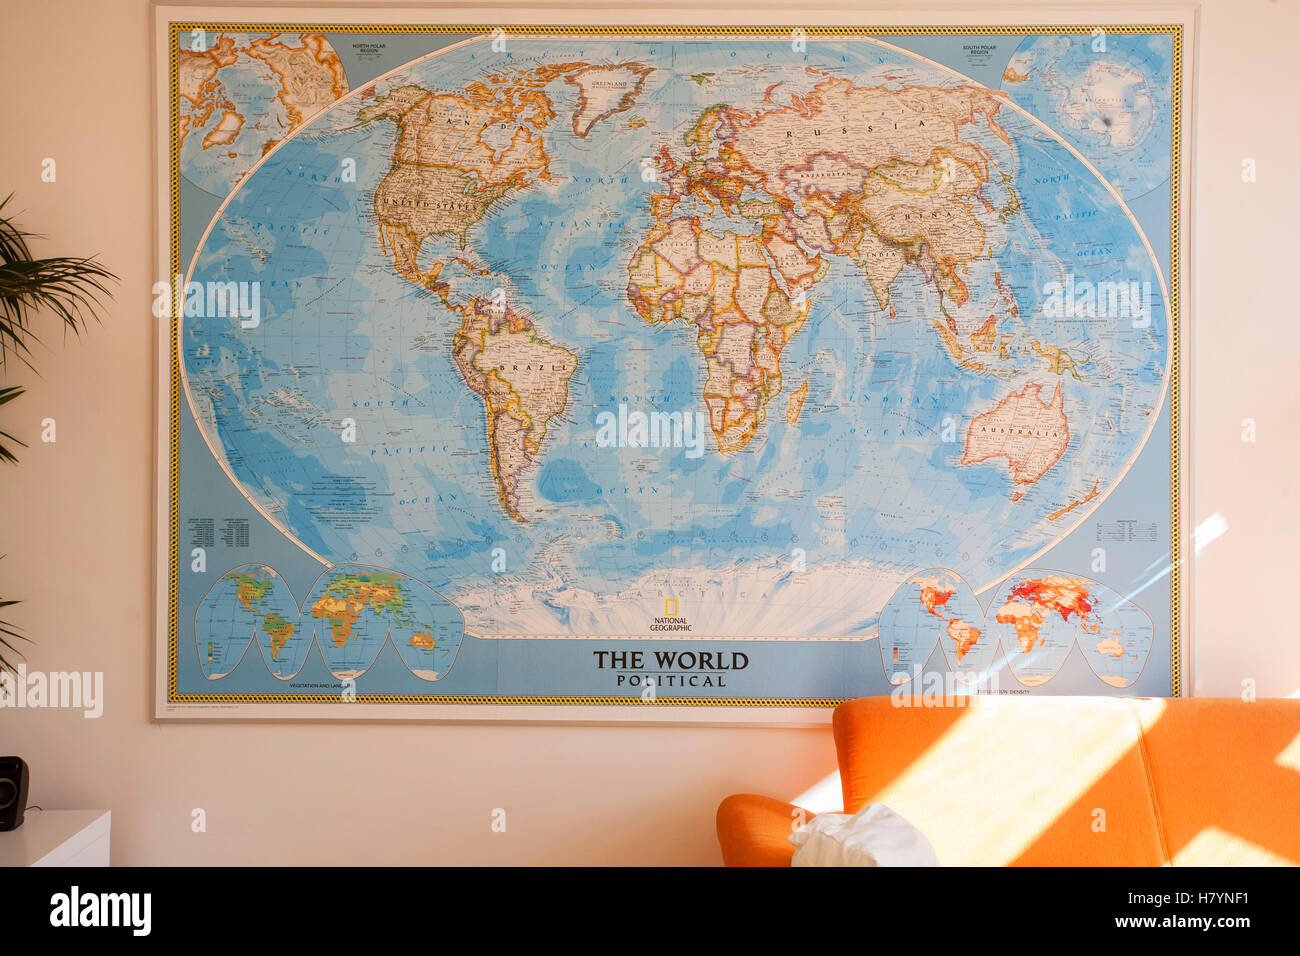 National Geographic Wall Map of political World, Prague open ... on europe shaded on a world map, national geographic world mural map, national geographic language world map, national geographic world map wallpaper, national geographic framed world map, national geographic large world map,